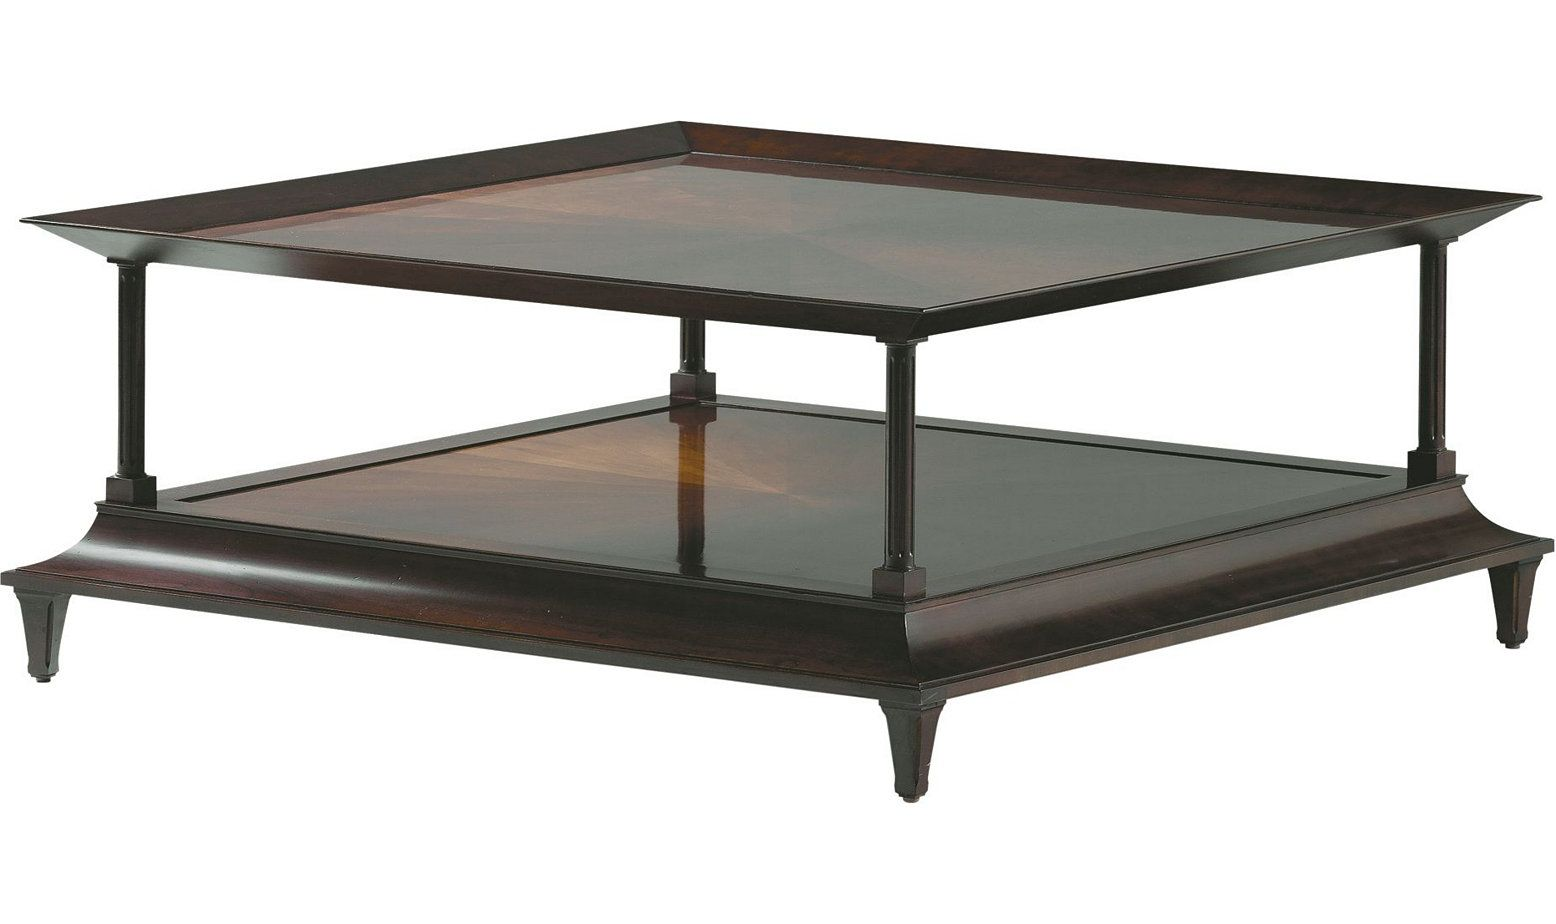 Coffee Table By Jacques Garcia 3752 Baker Furniture Coffee